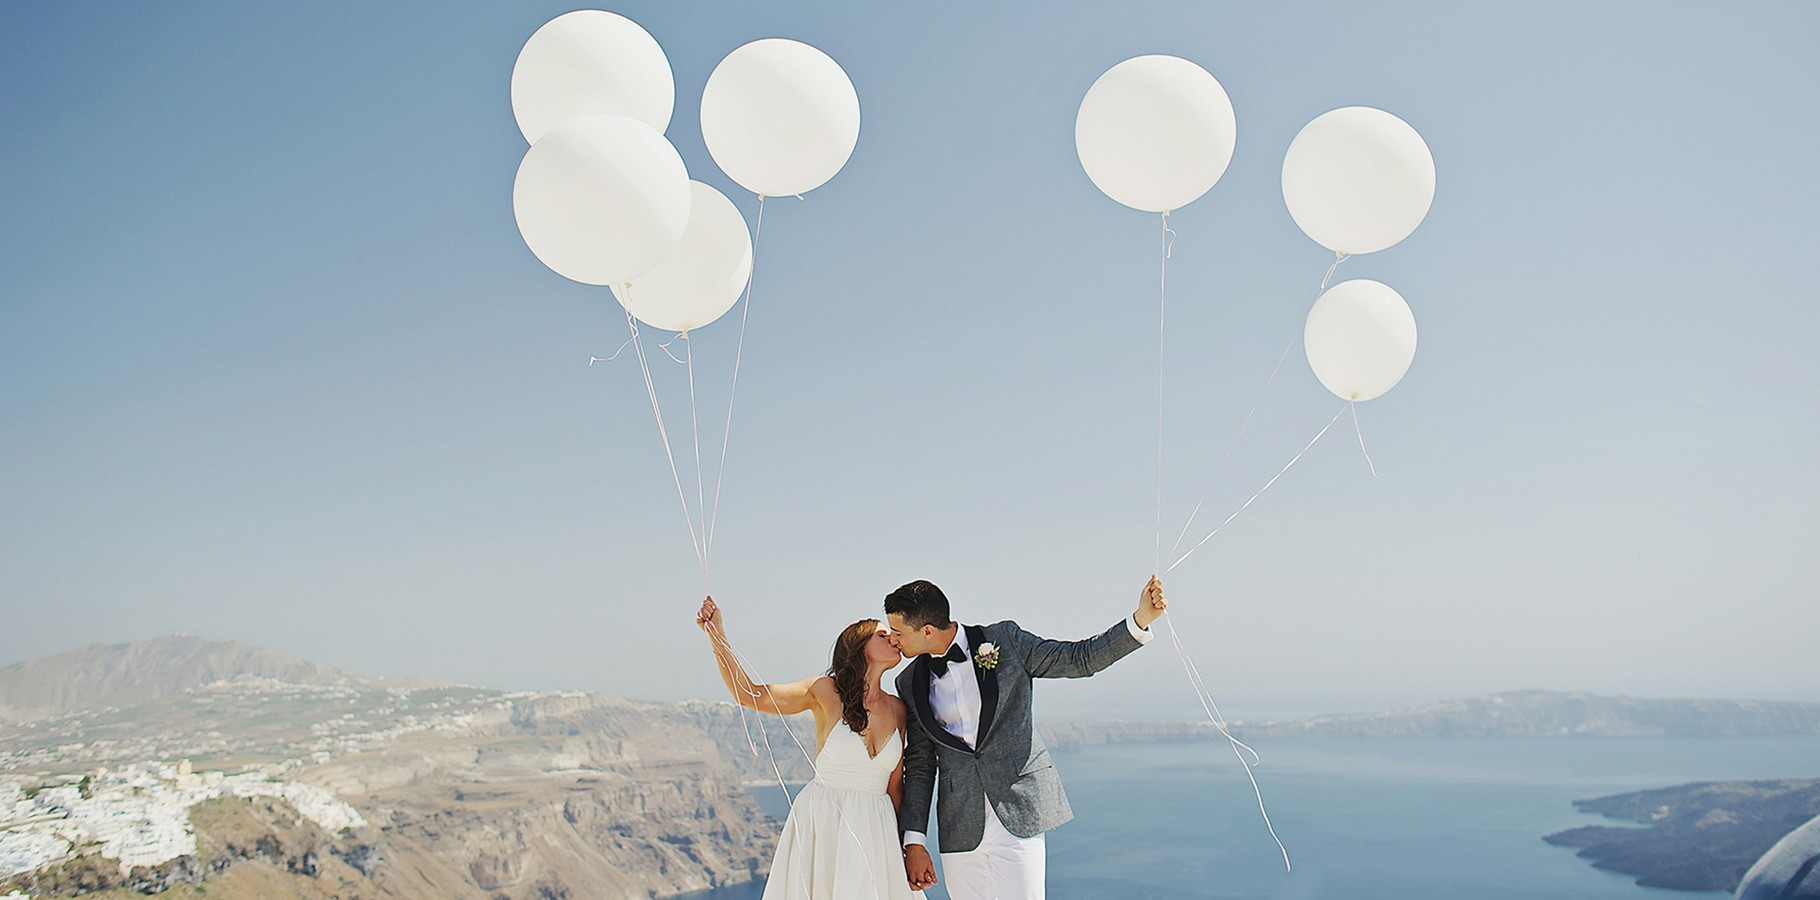 balloon-elopement-photo-in-santorini-1